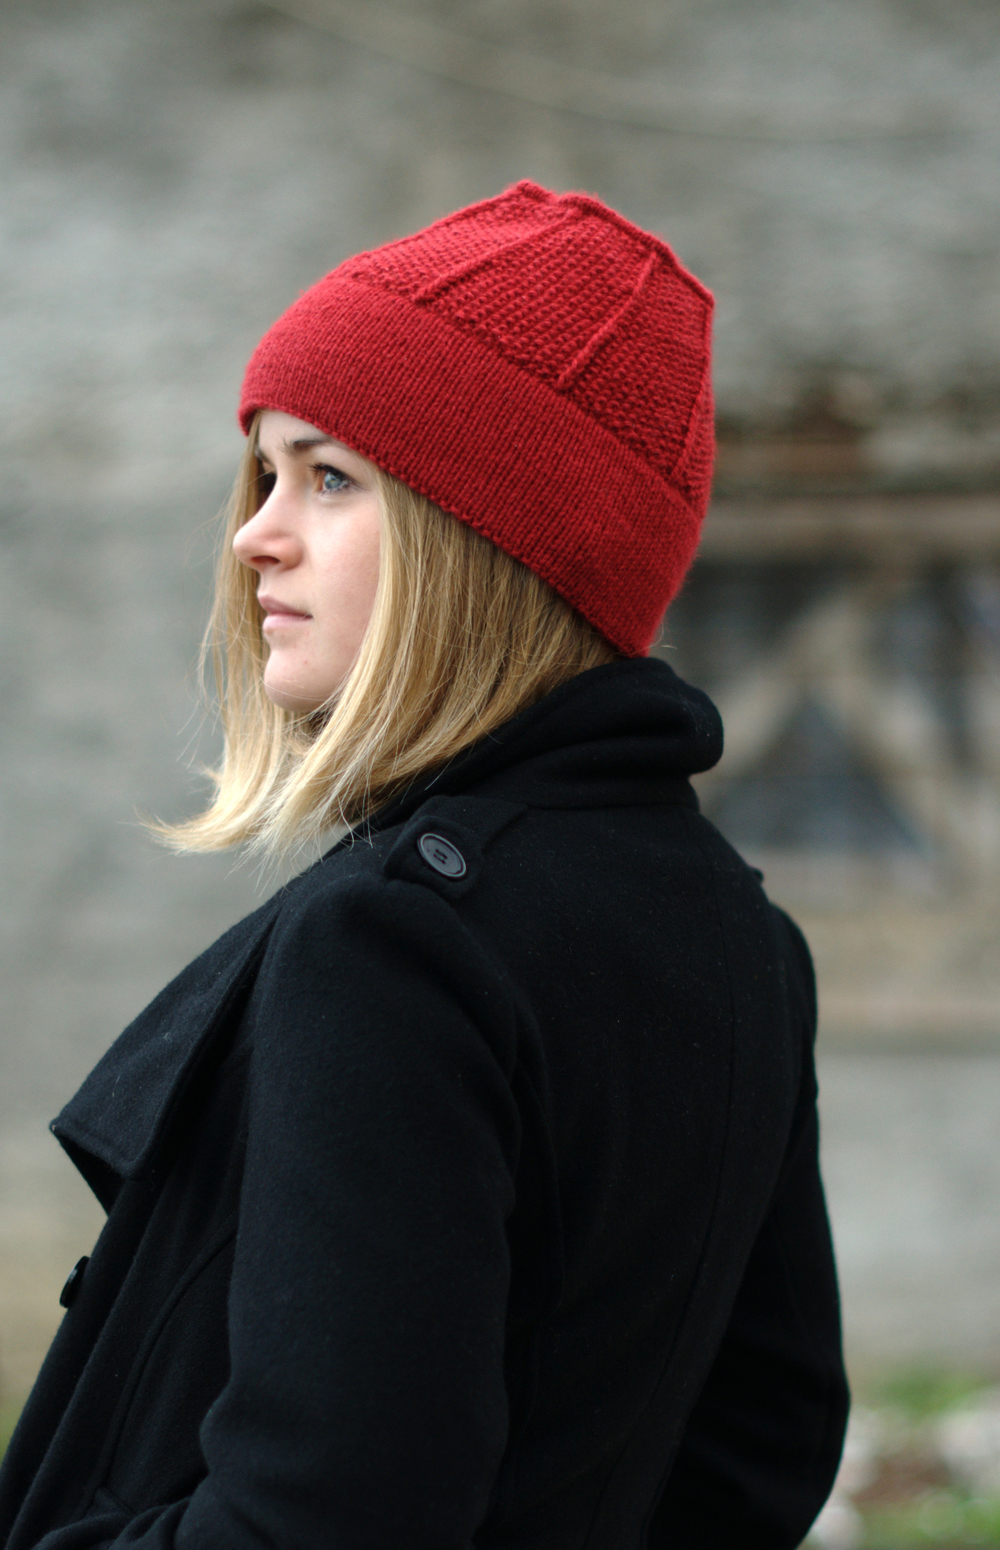 Taboosh pillbox Hat knitting pattern